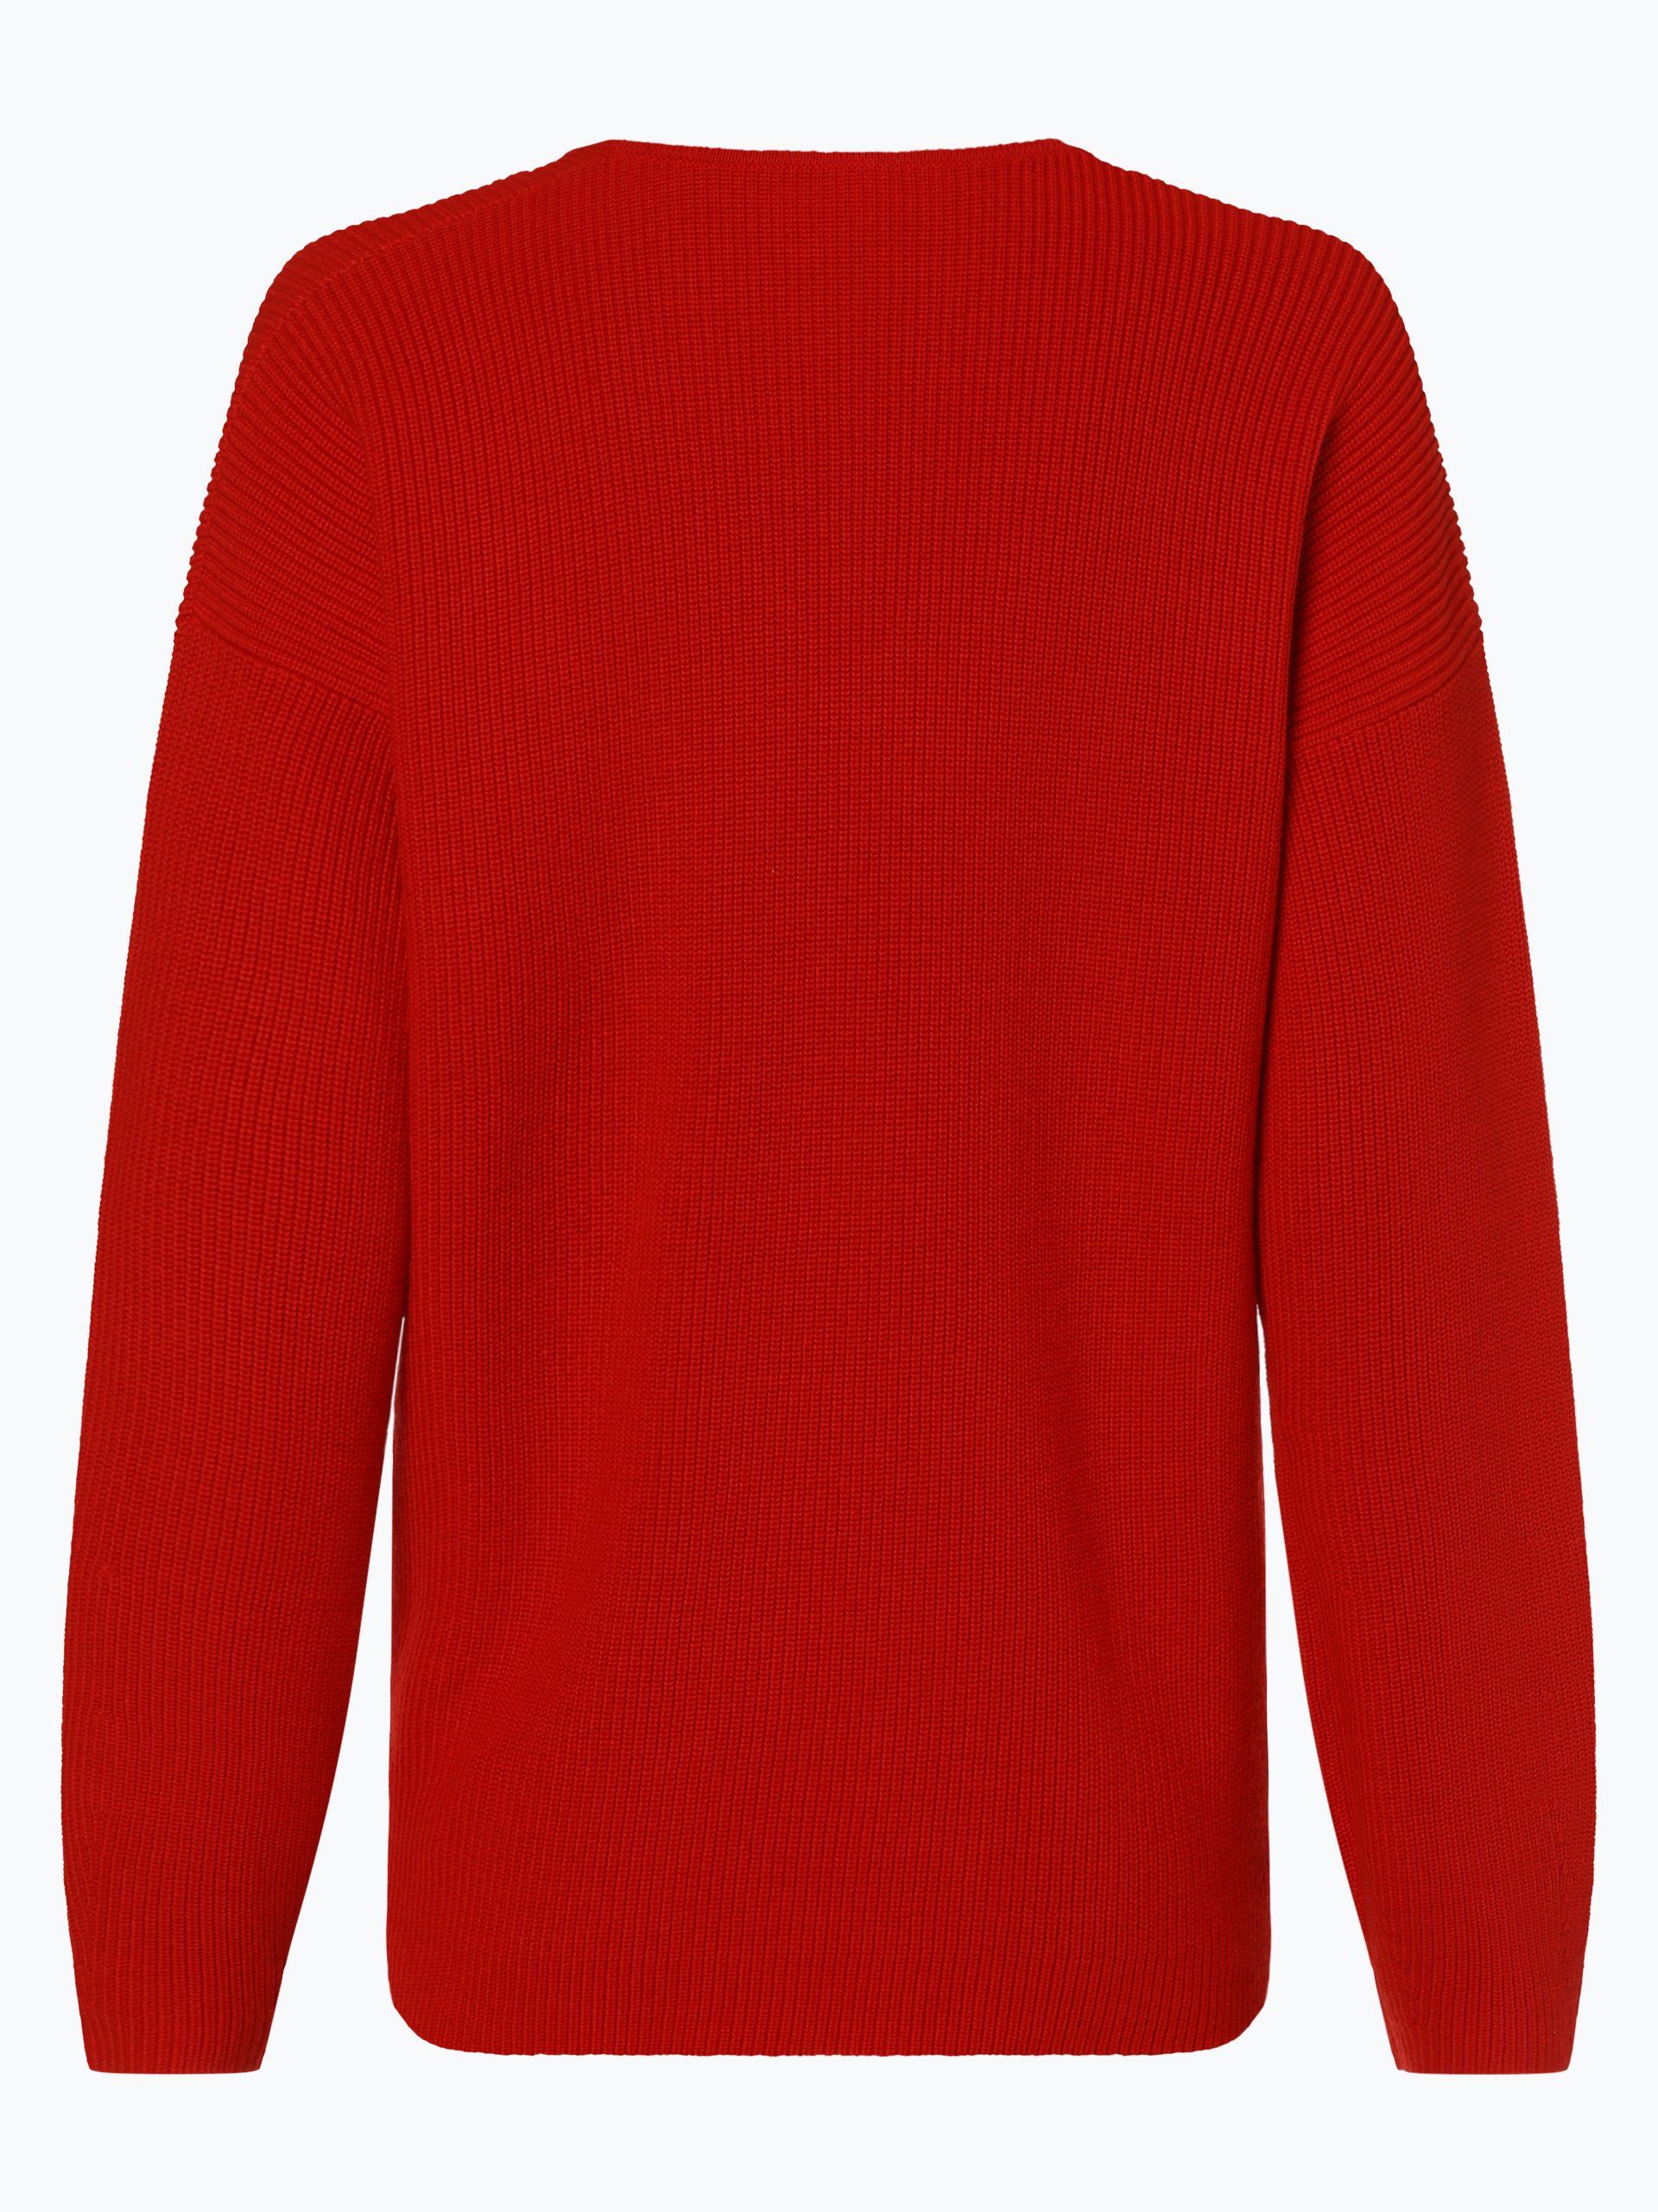 BOSS Casual Damen Pullover - Wennelly